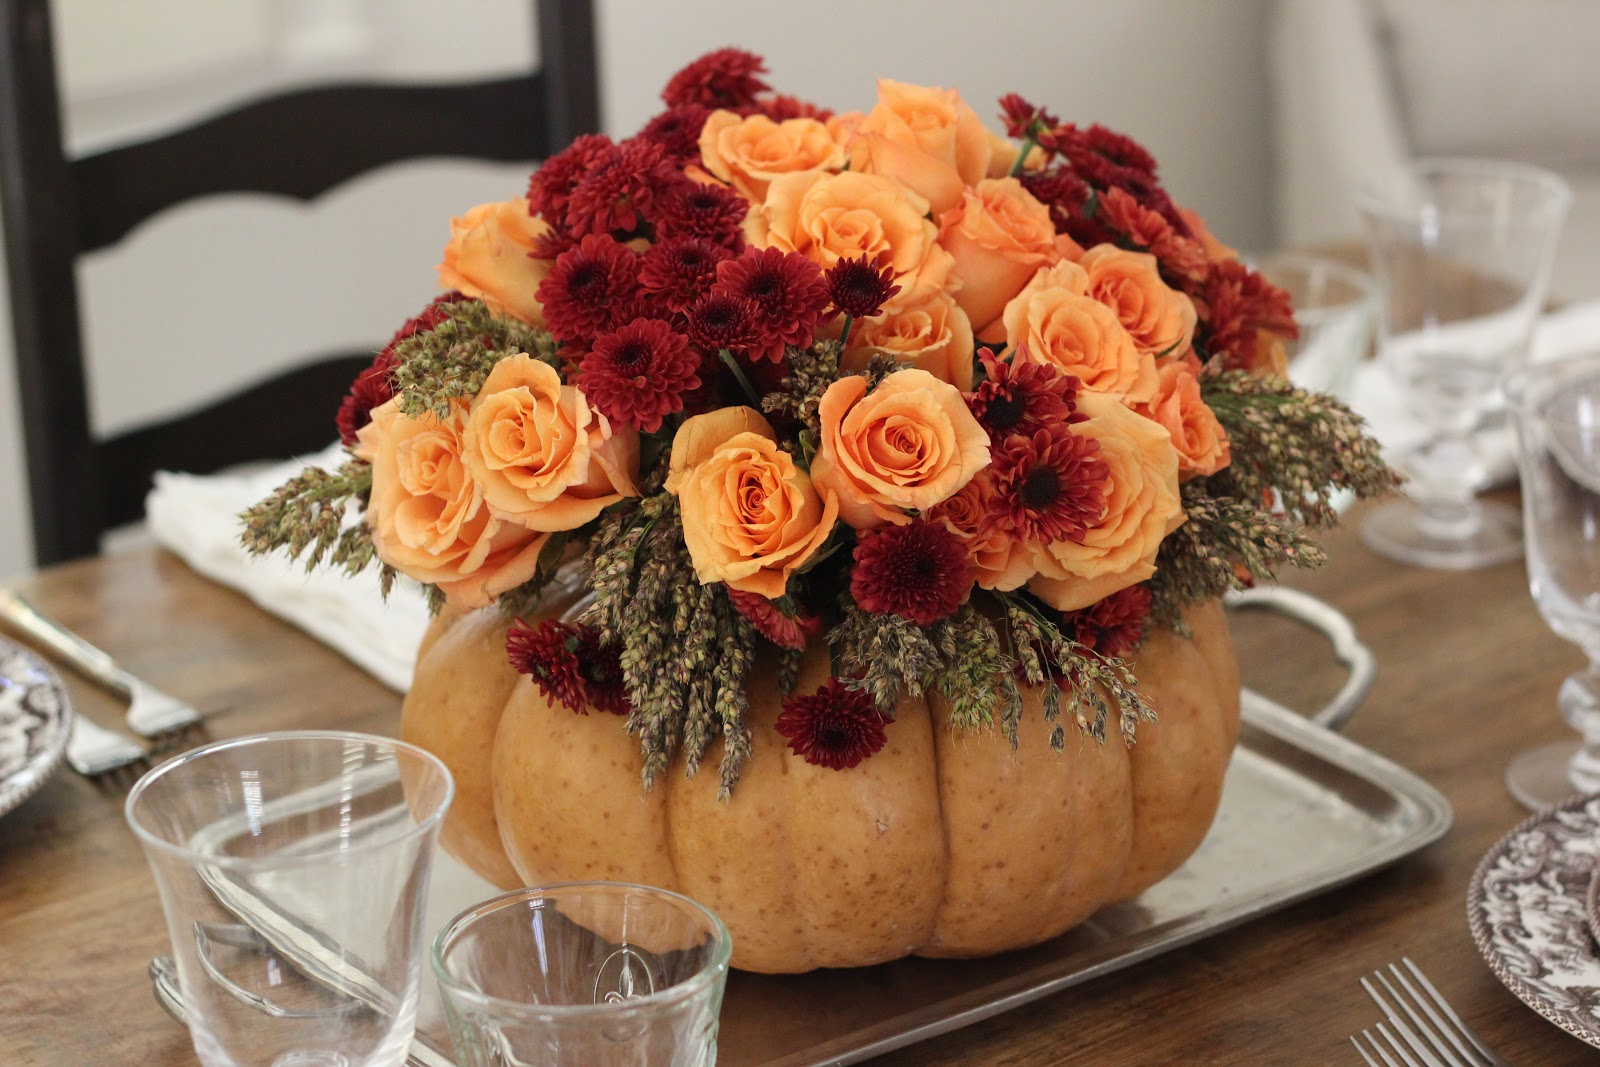 Jenny steffens hobick thanksgiving table setting diy Cheap thanksgiving table setting ideas